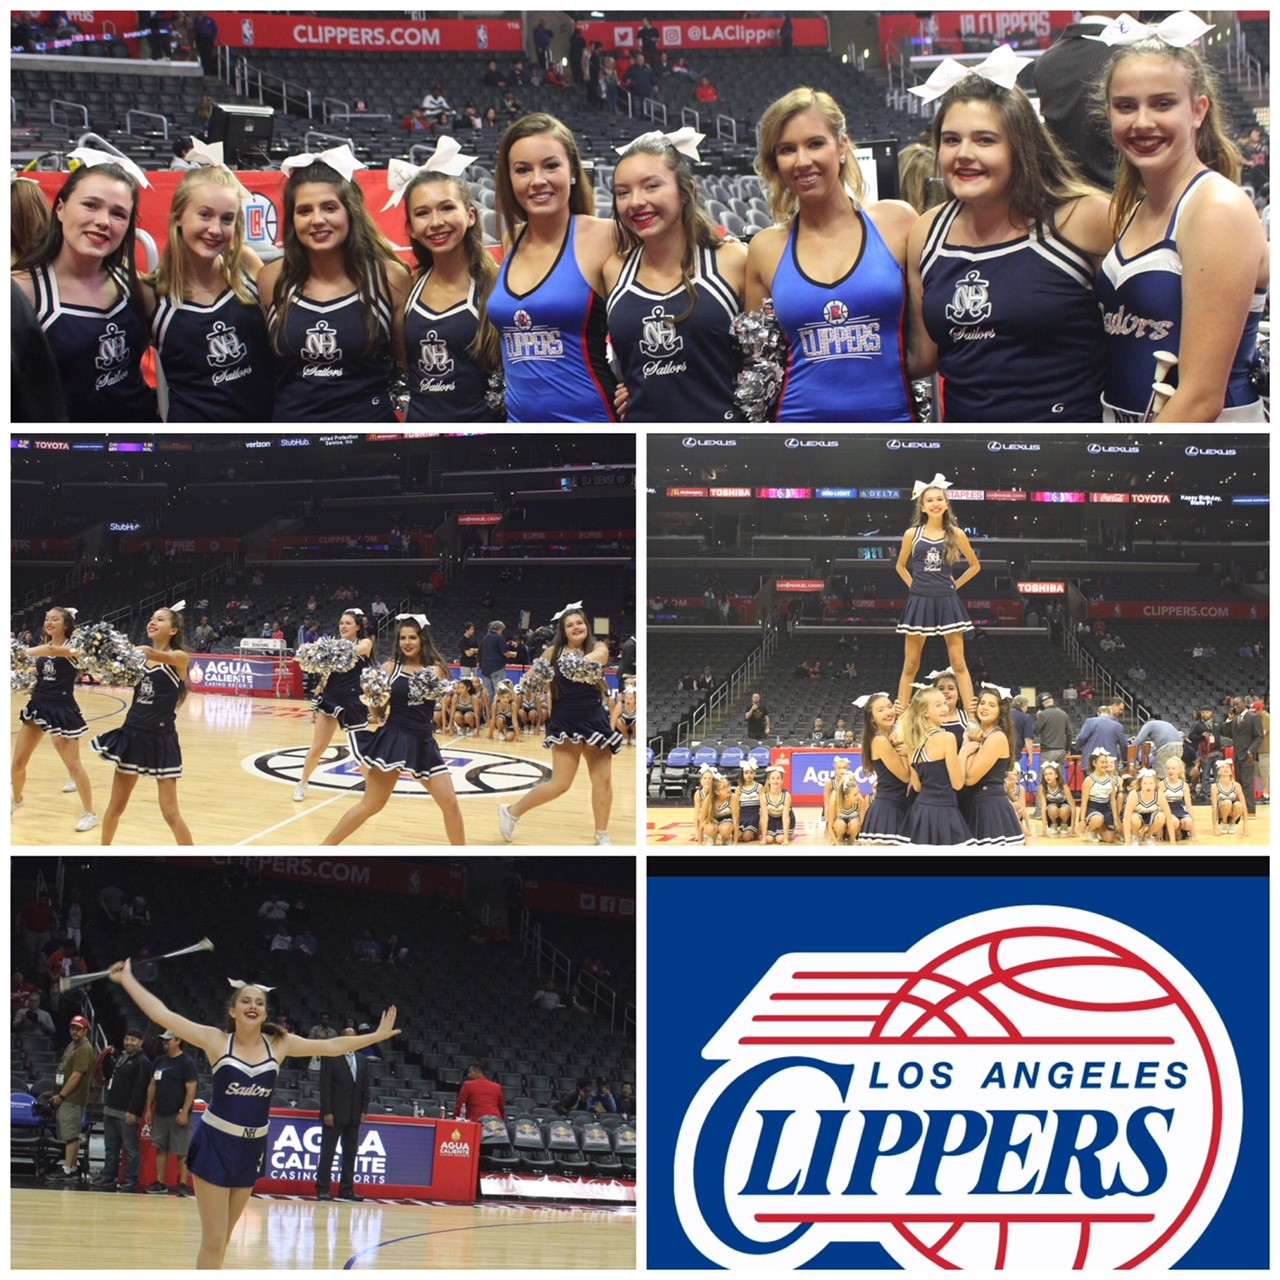 LA Clippers Staple Center performance